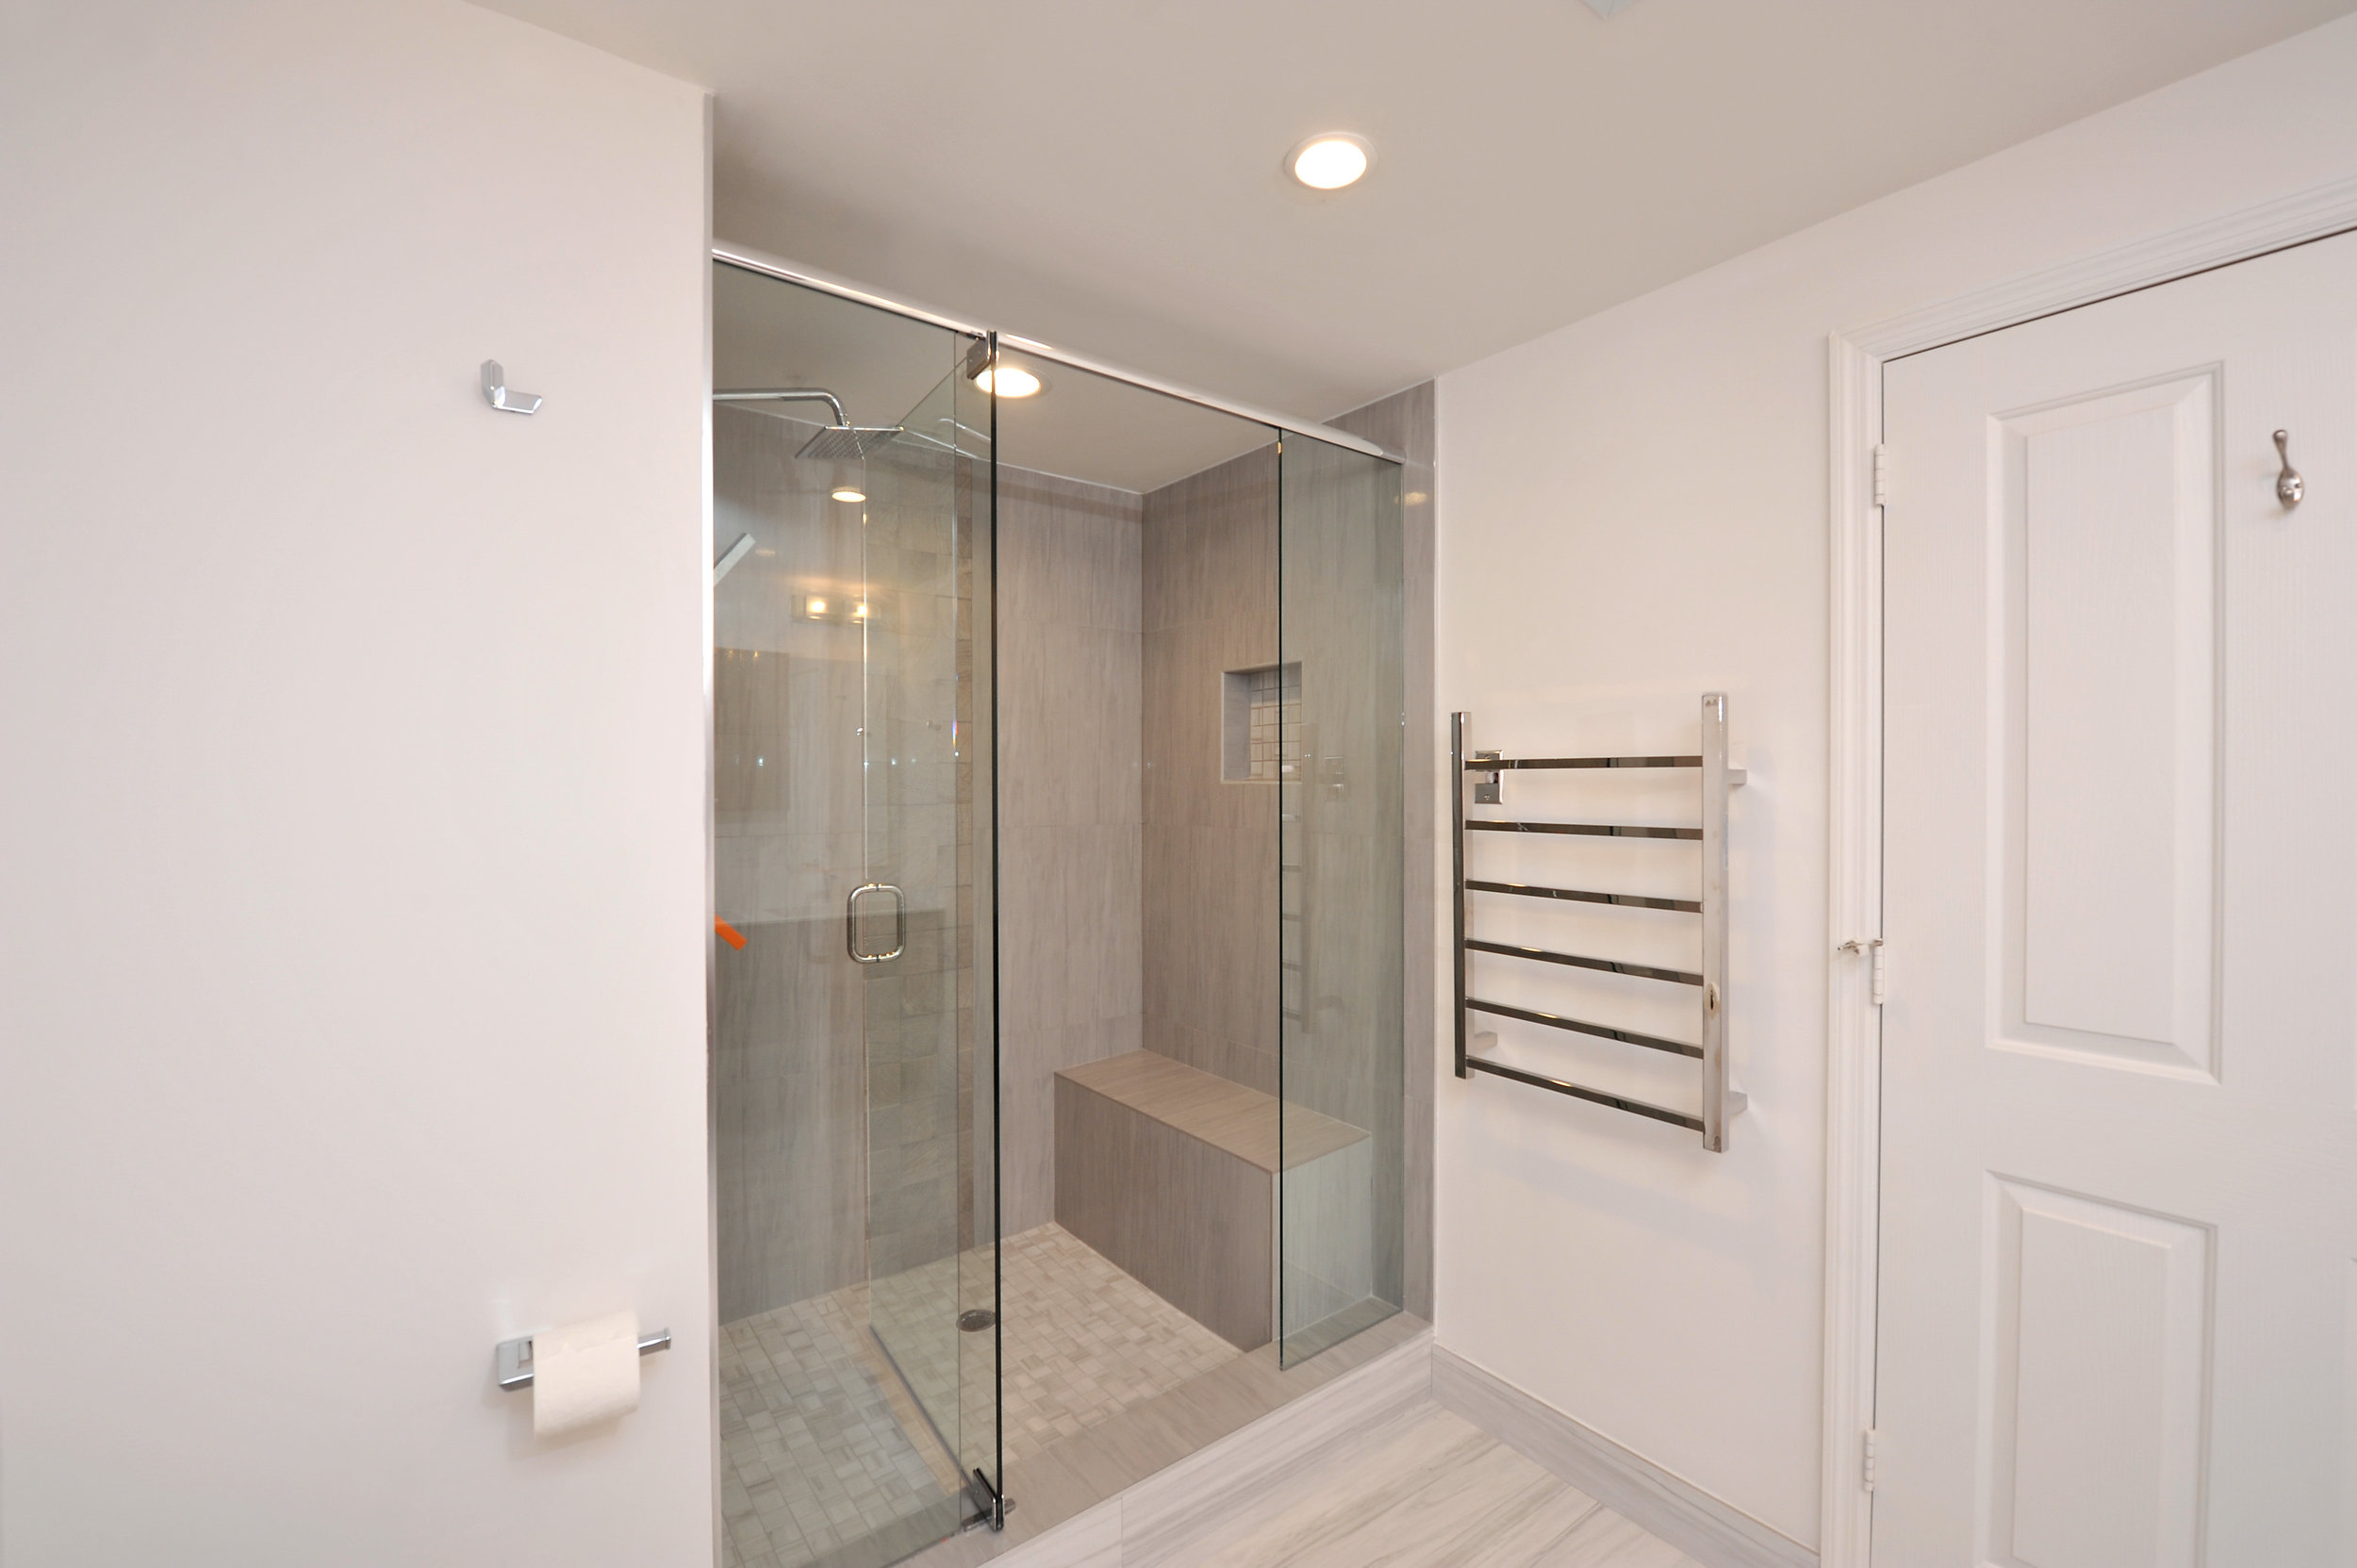 sheffield_construction_broward_gallery_shower3.jpg